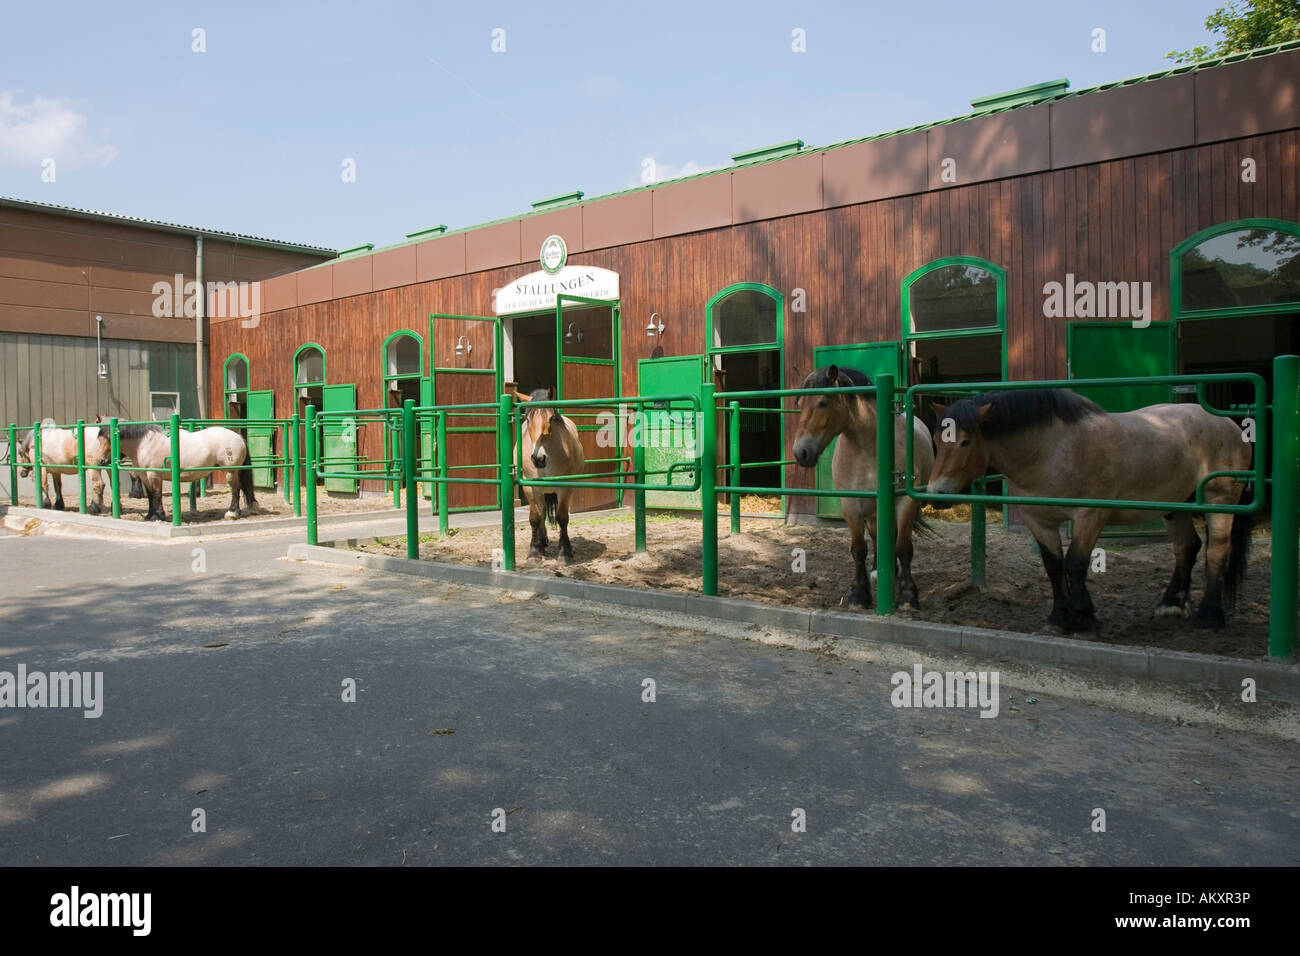 Brewery horse of the Licher brewery in the stable, Lich, Germany. - Stock Image